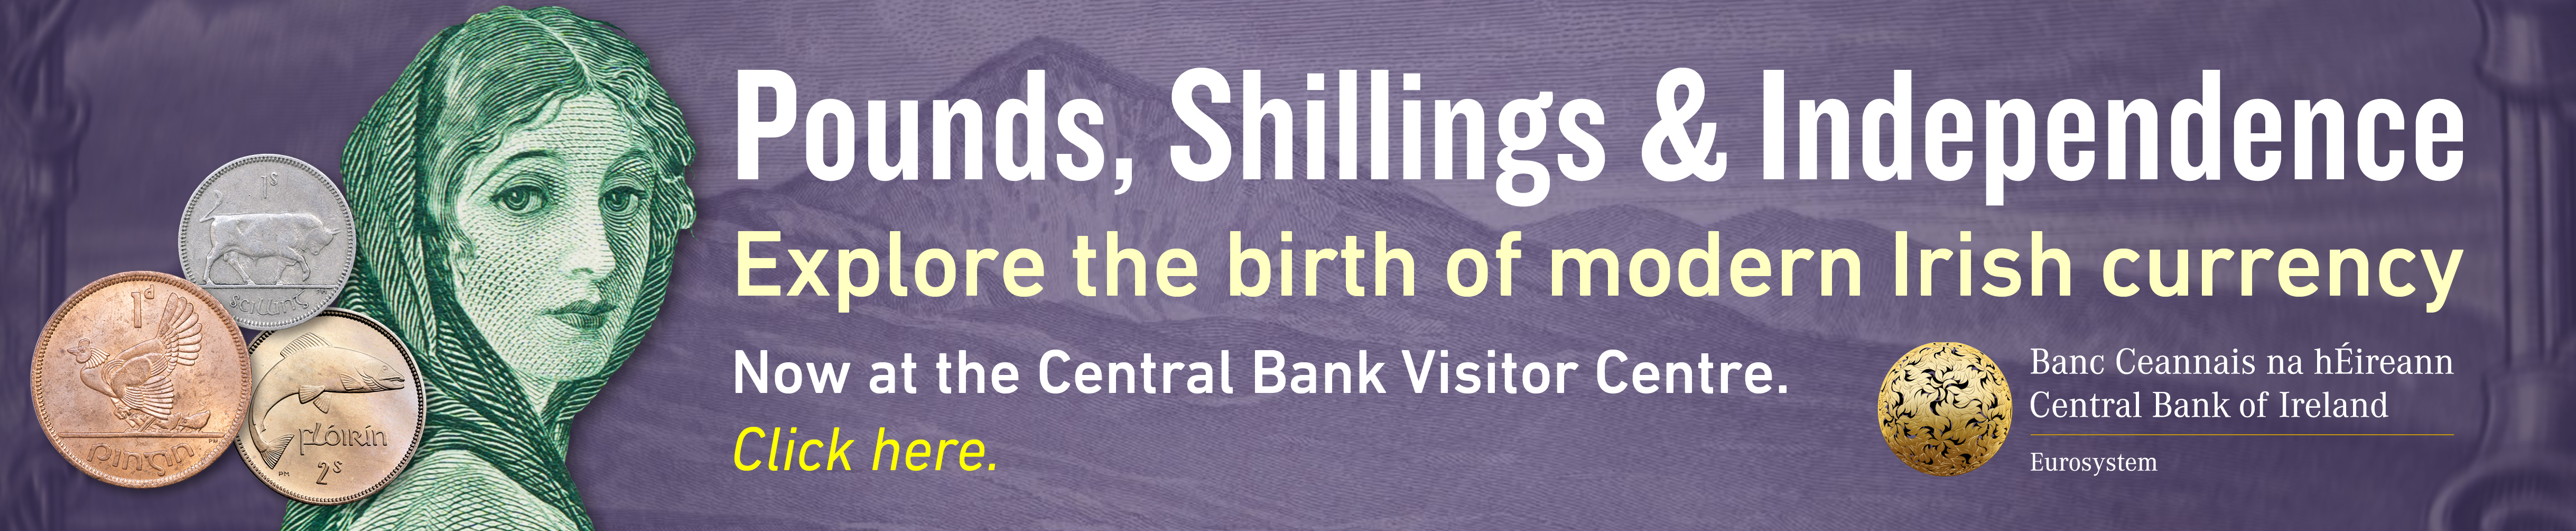 Central Bank of Ireland Visitor Centre